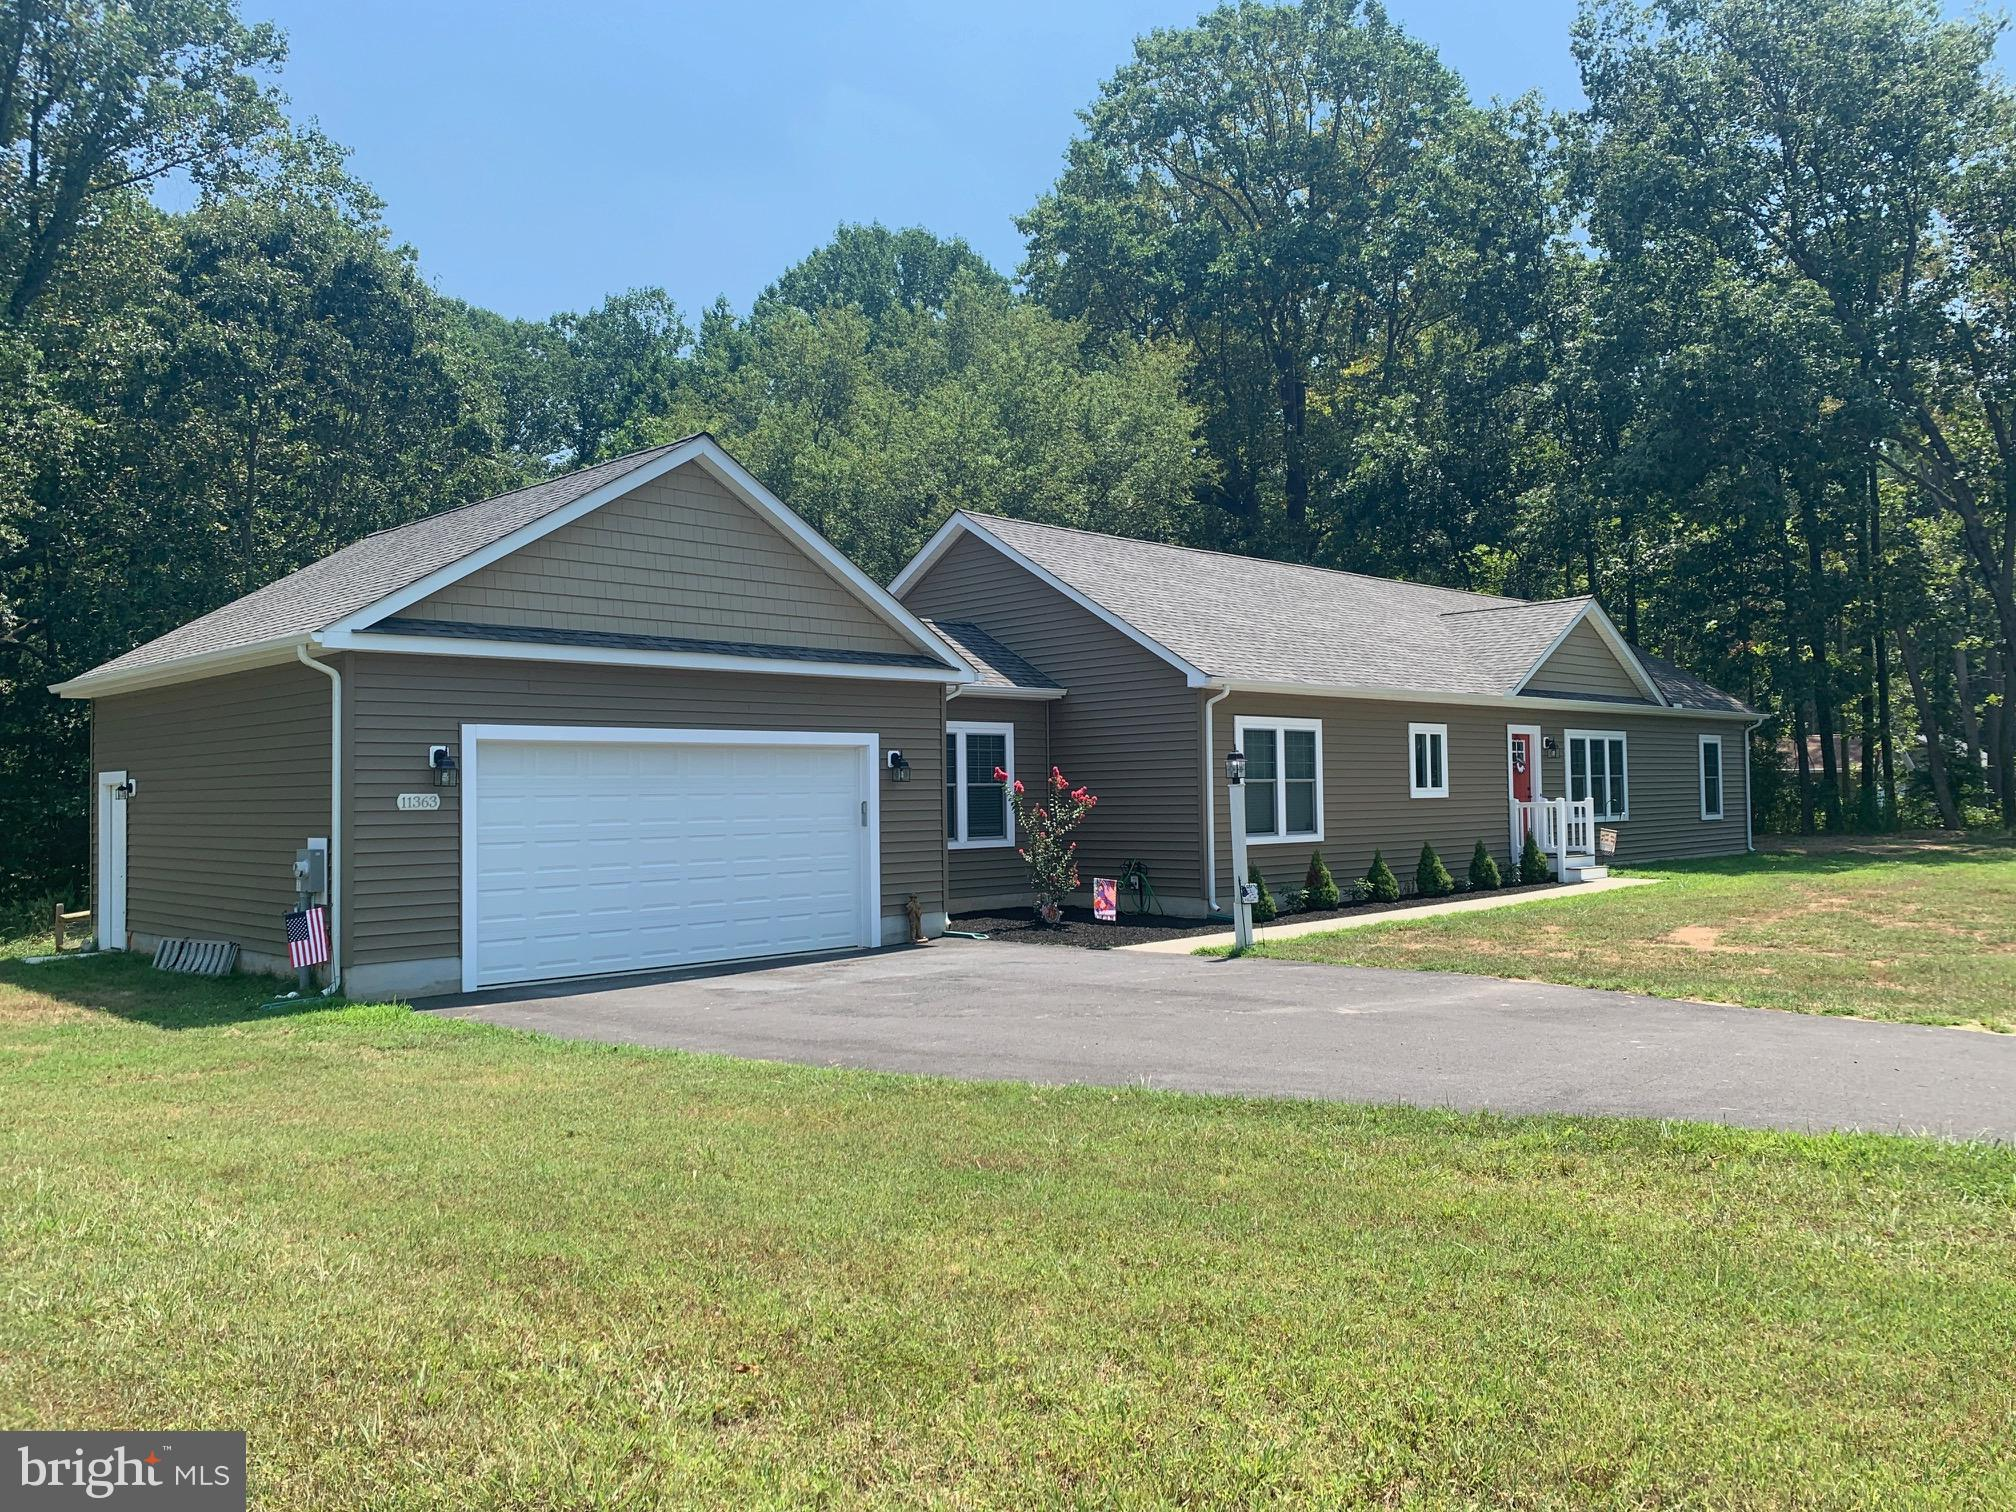 11363 RIVER ROAD, RIDGELY, MD 21660